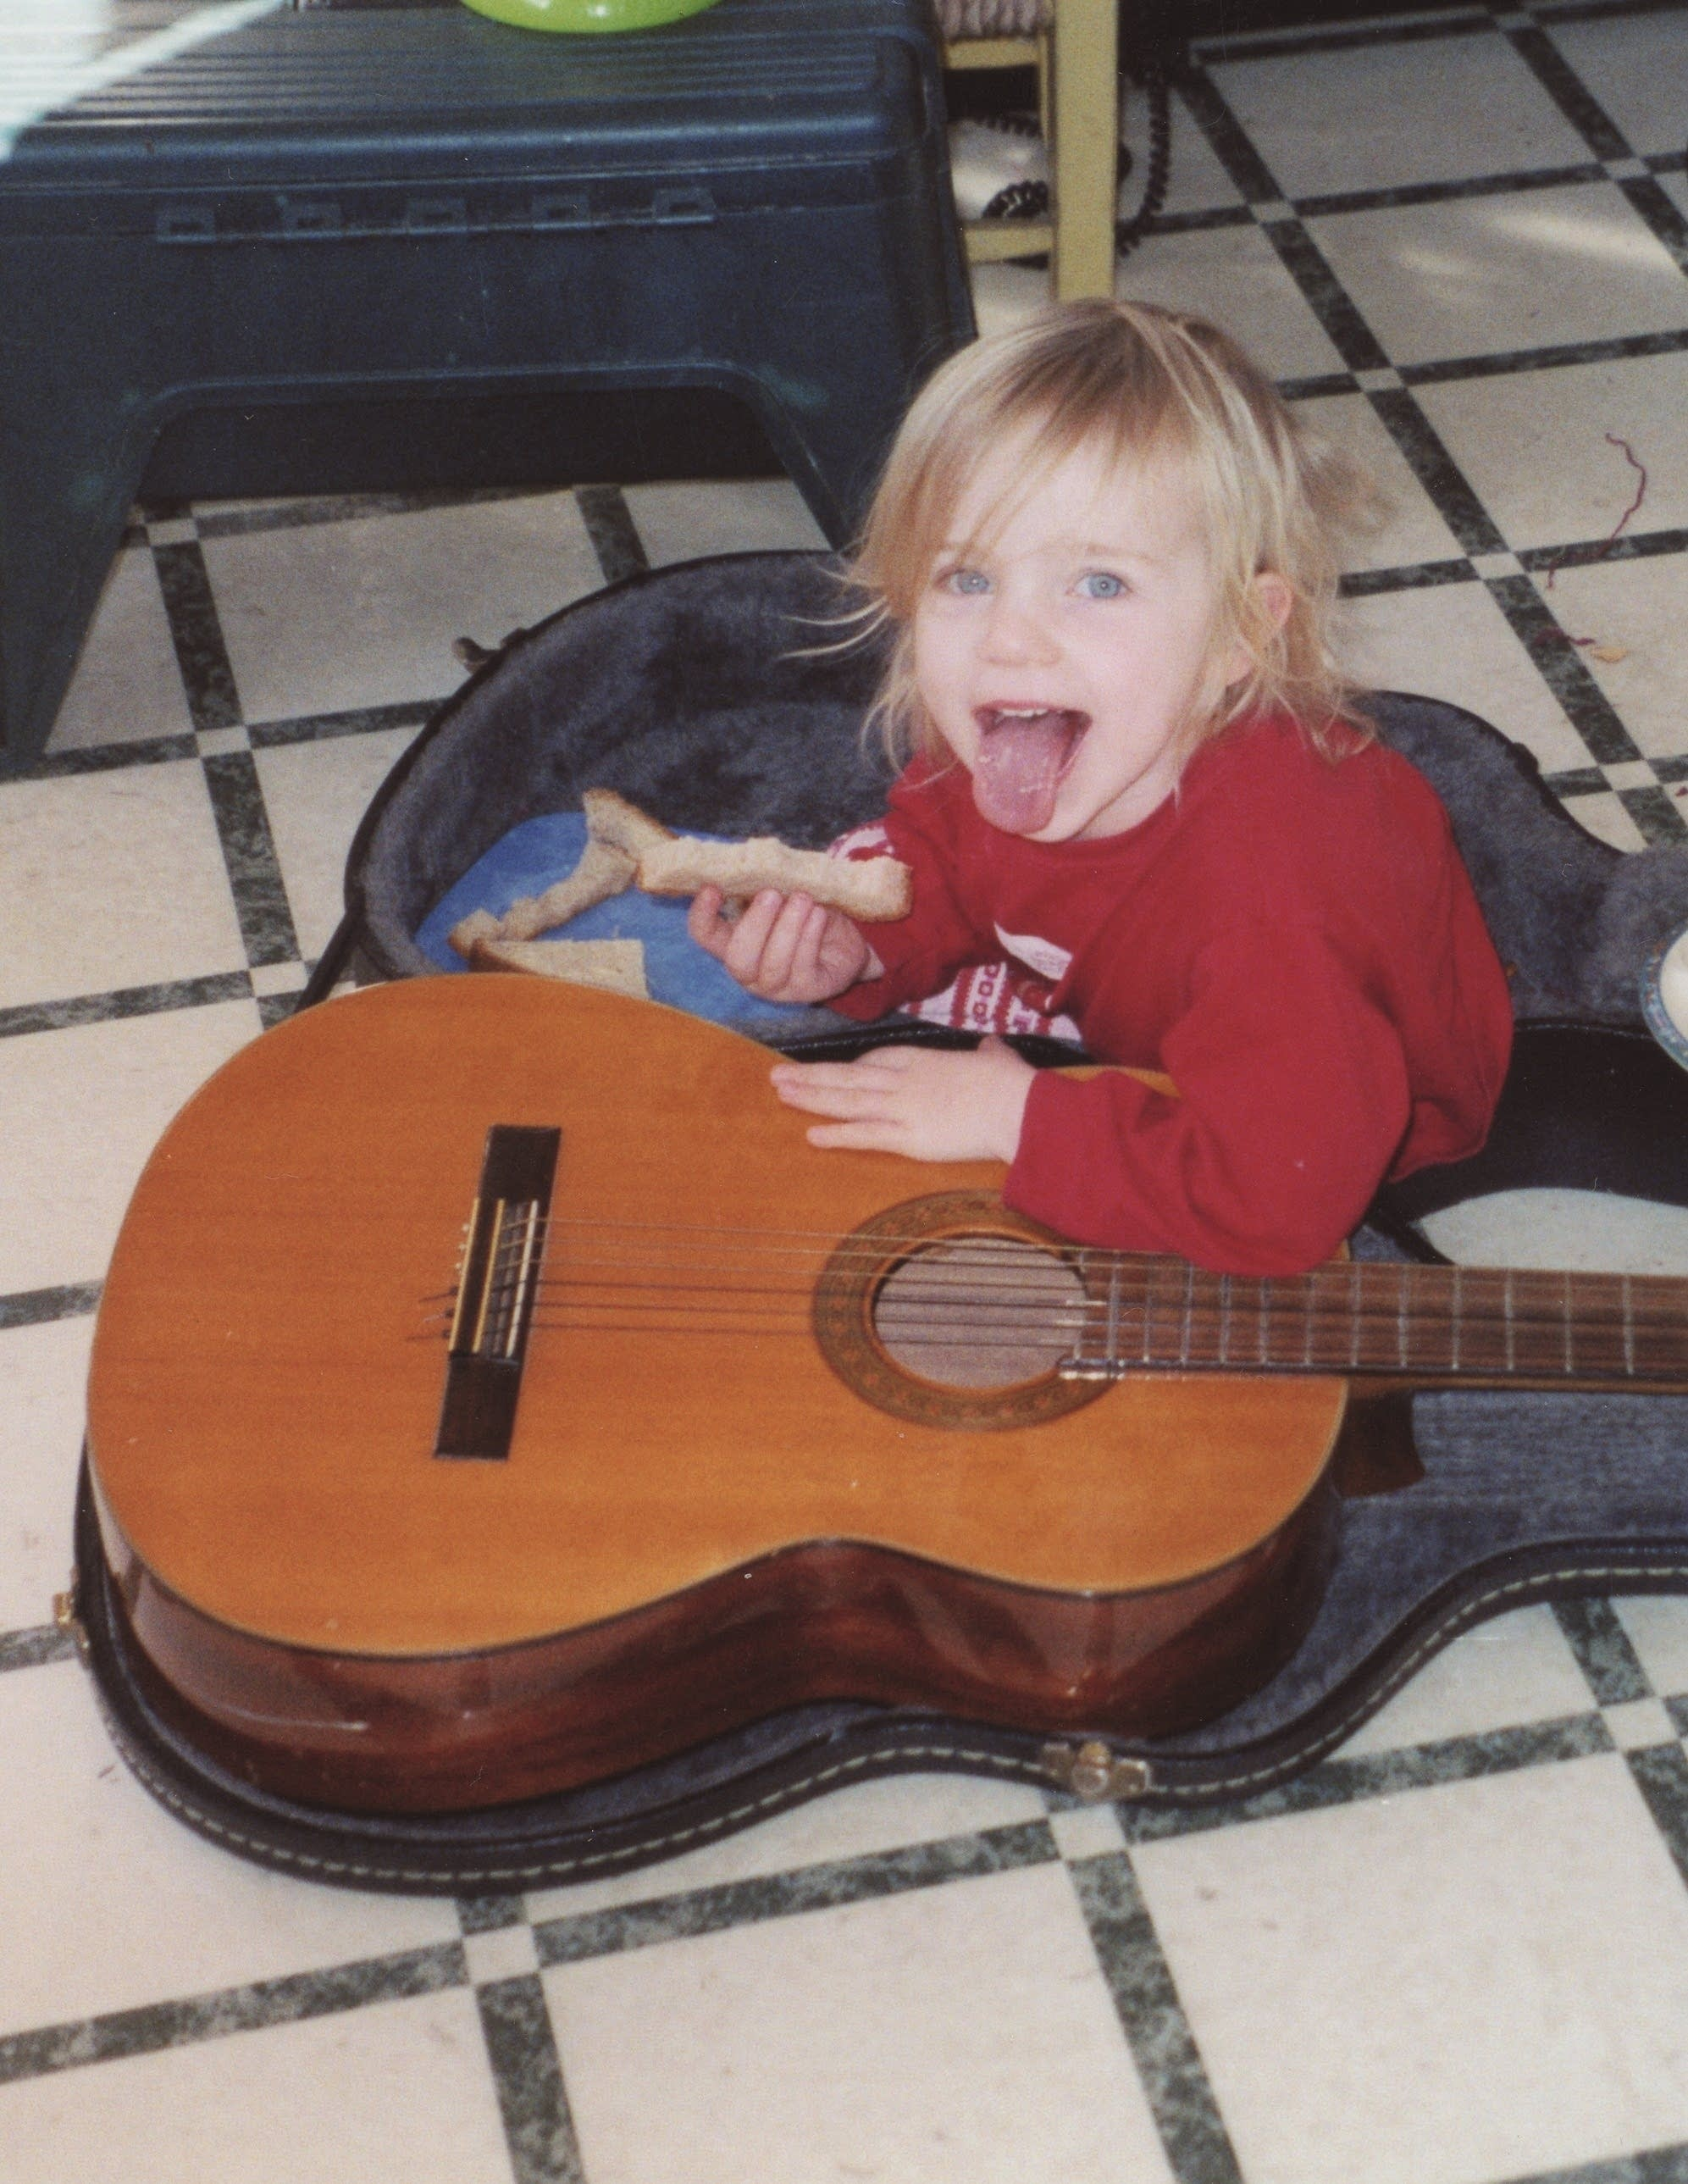 Young child sitting with guitar in case.